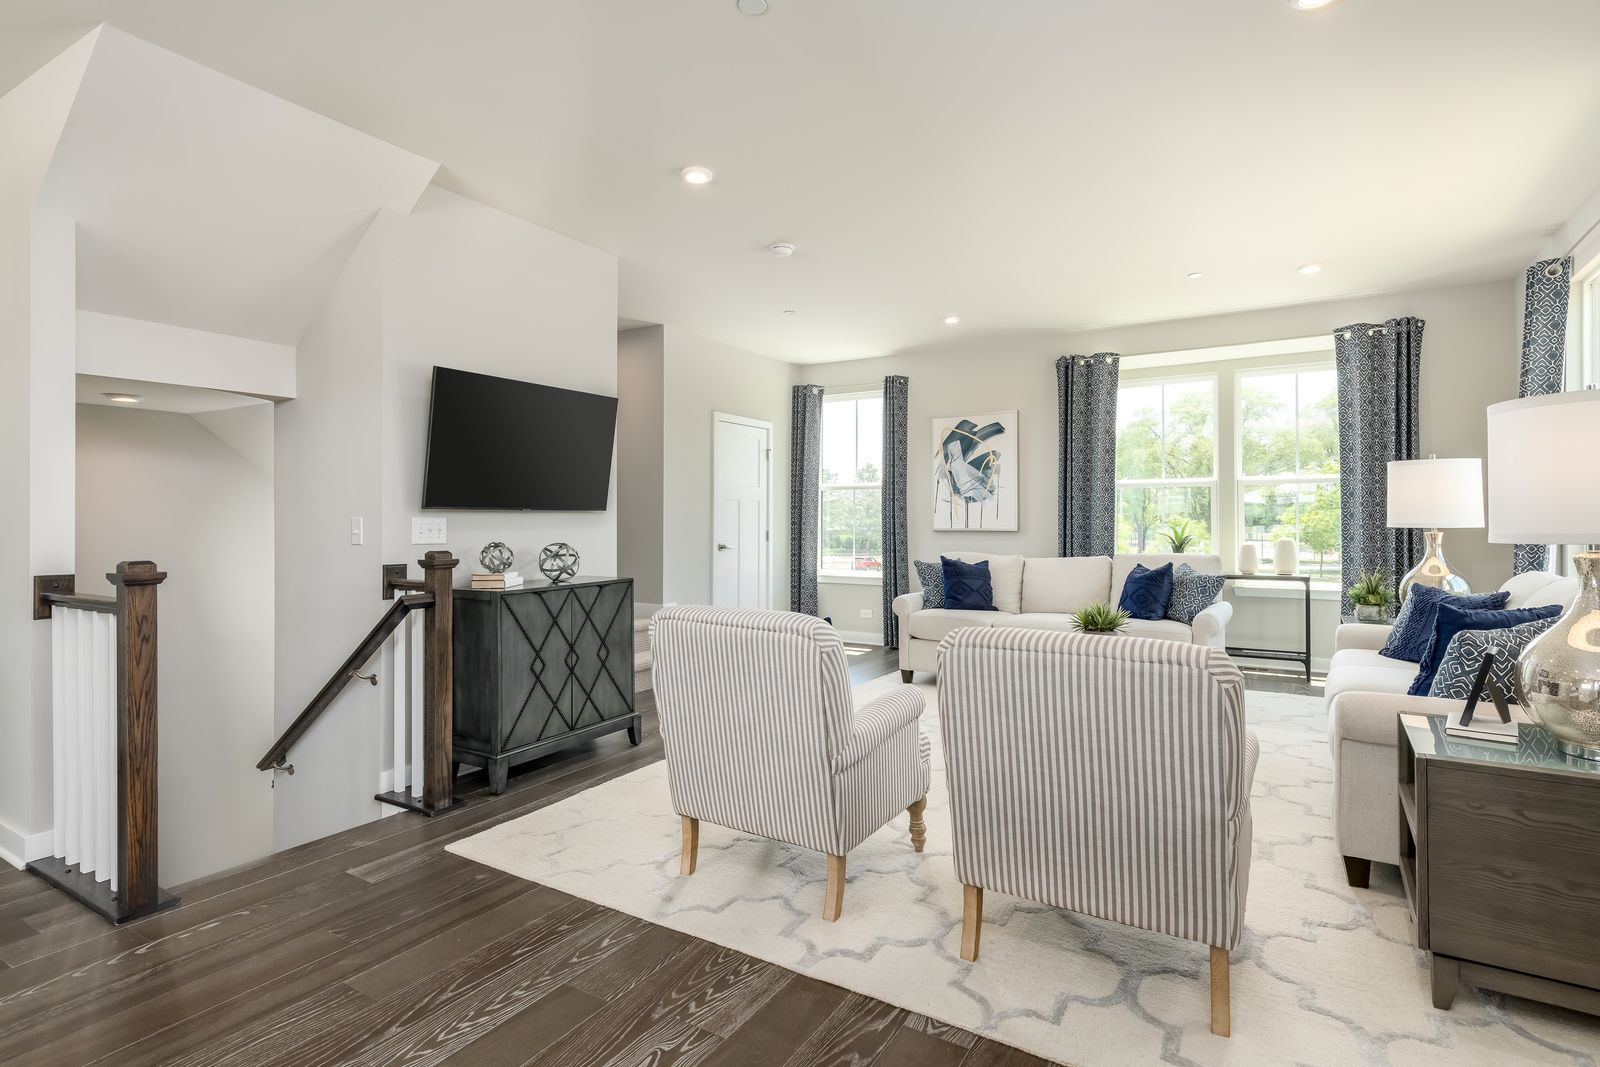 Living Area featured in the Mendelssohn By Ryan Homes in Washington, VA